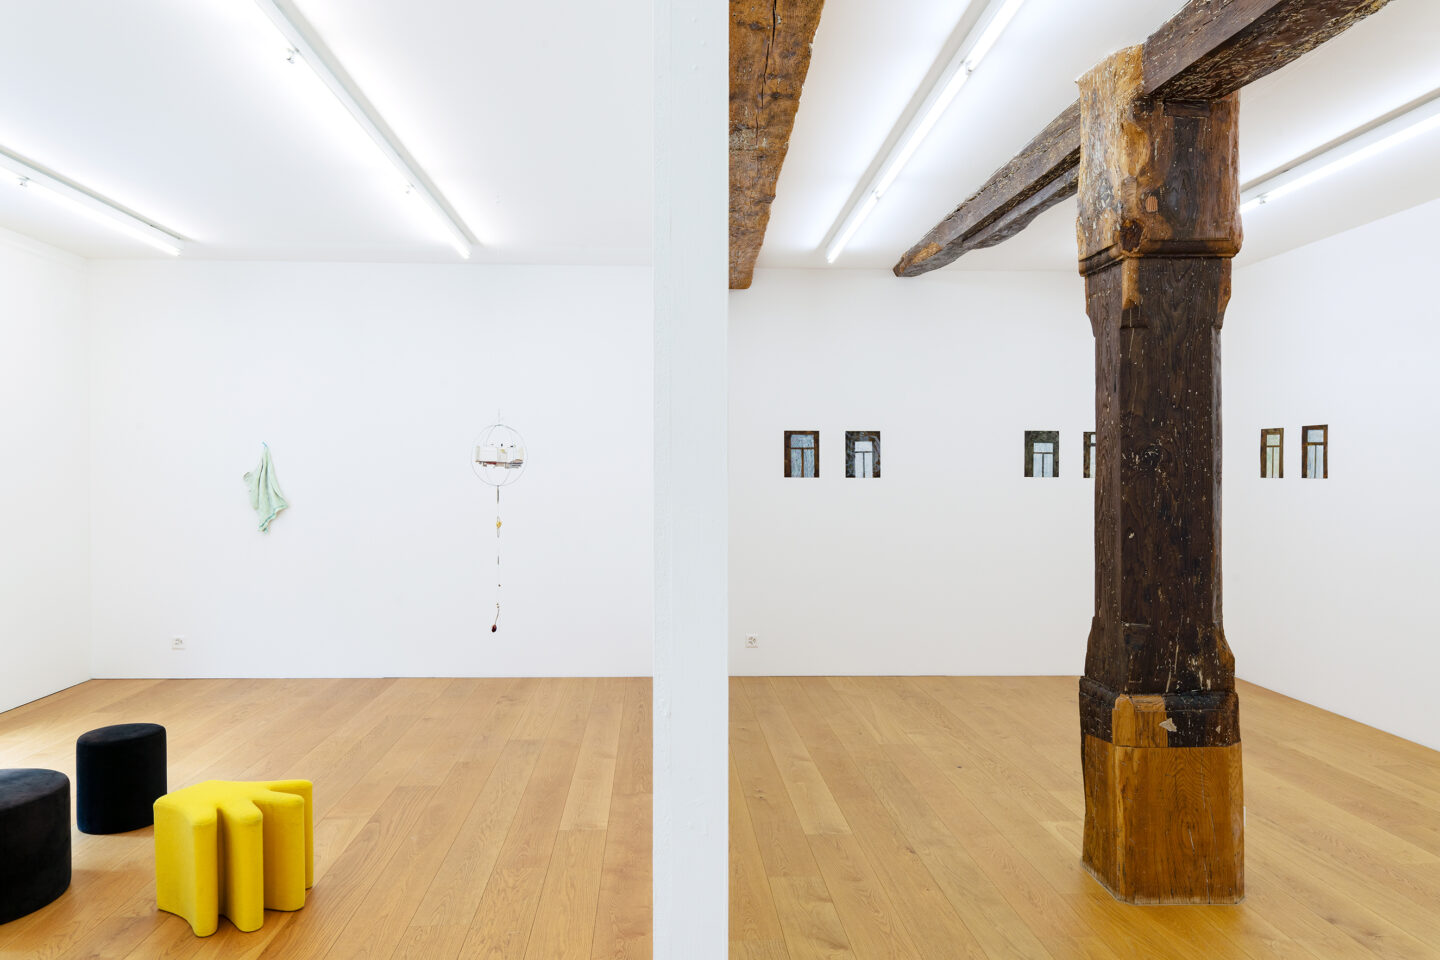 Exhibition View Groupshow «Among Them» at Kirchgasse, Steckborn, 2020 / Courtesy: the artists and Kirchgasse